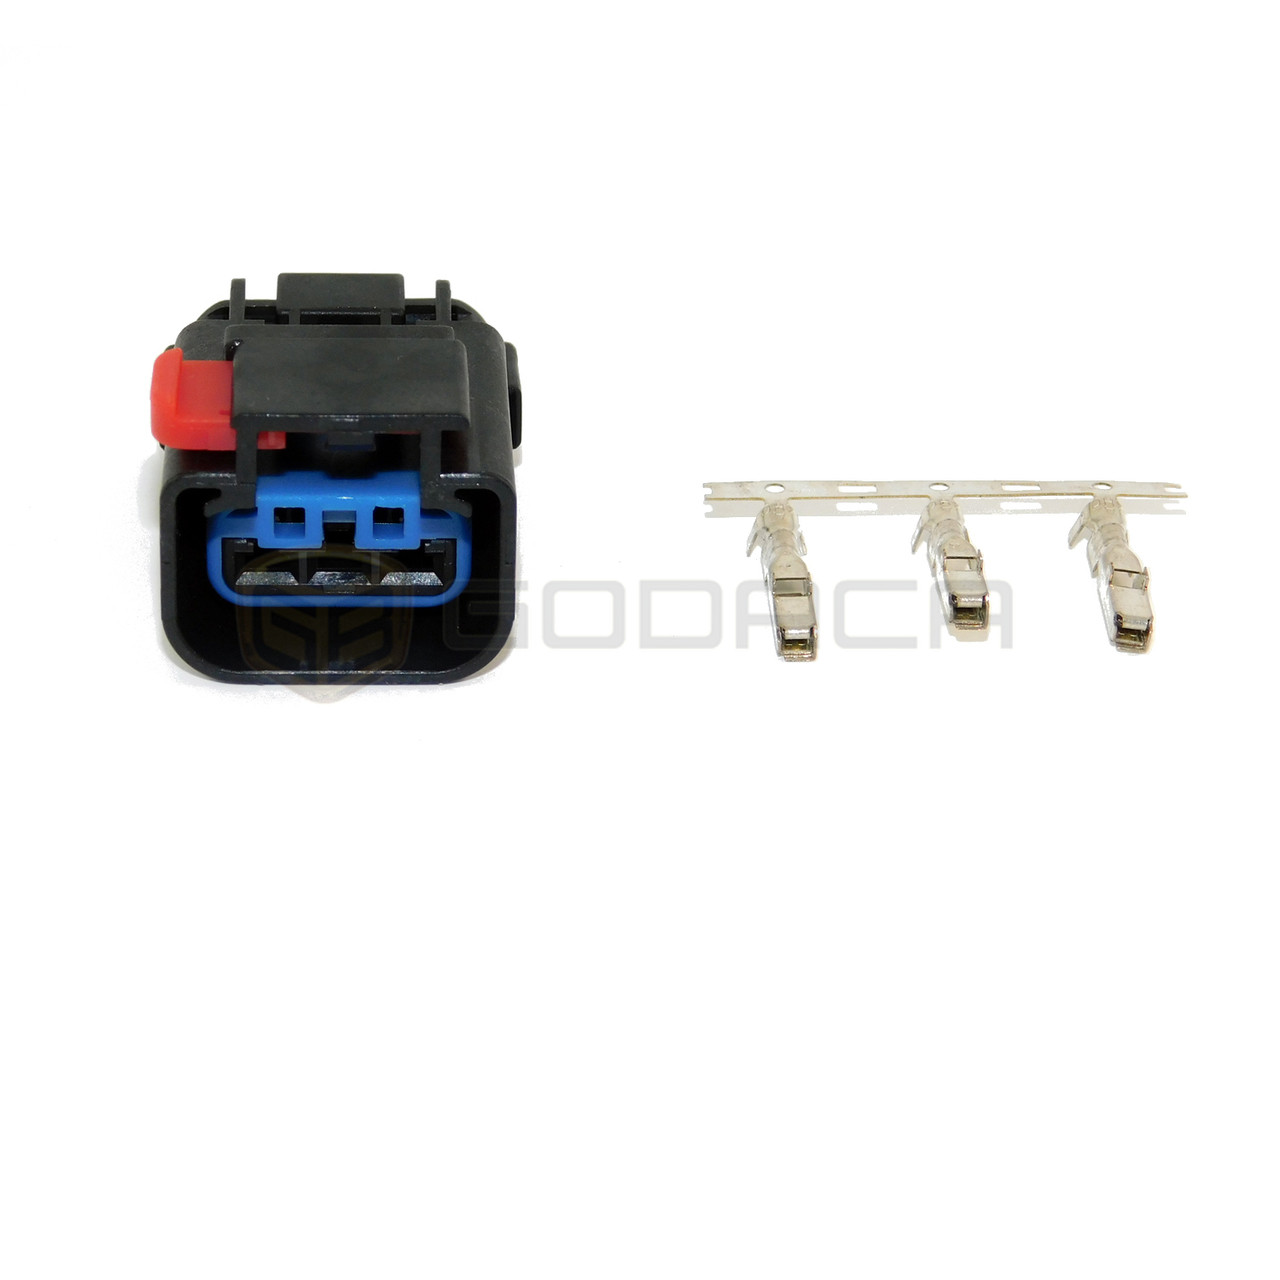 small resolution of 1x connector 3 way for cps ignition coil pt5726 1p1080 dodge w out wire godaca llc